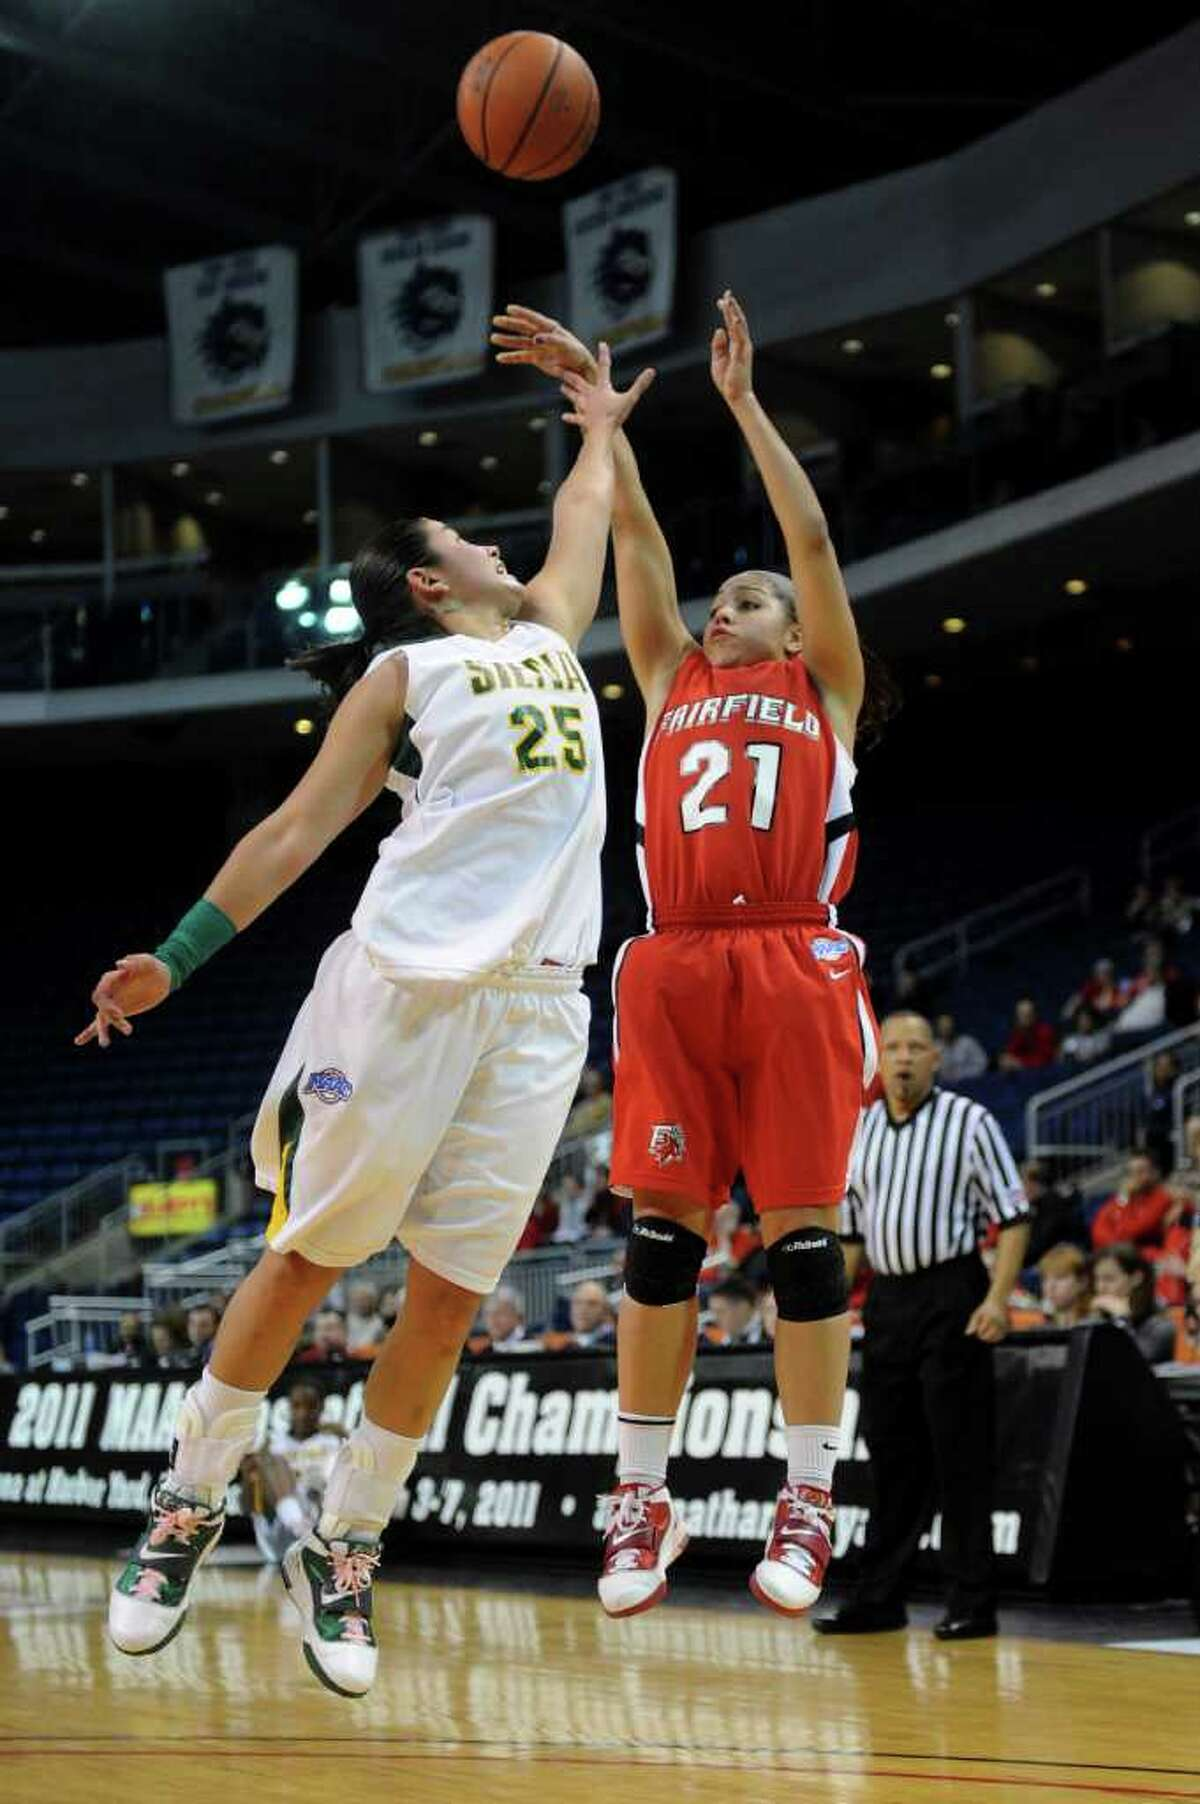 Fairfield's Desiree Pina takes a shot as Siena's Cristina Centeno defends during Friday's MAAC Tournament quarterfinal game at Webster Bank Arena at Harbor Yard on March 4, 2011.